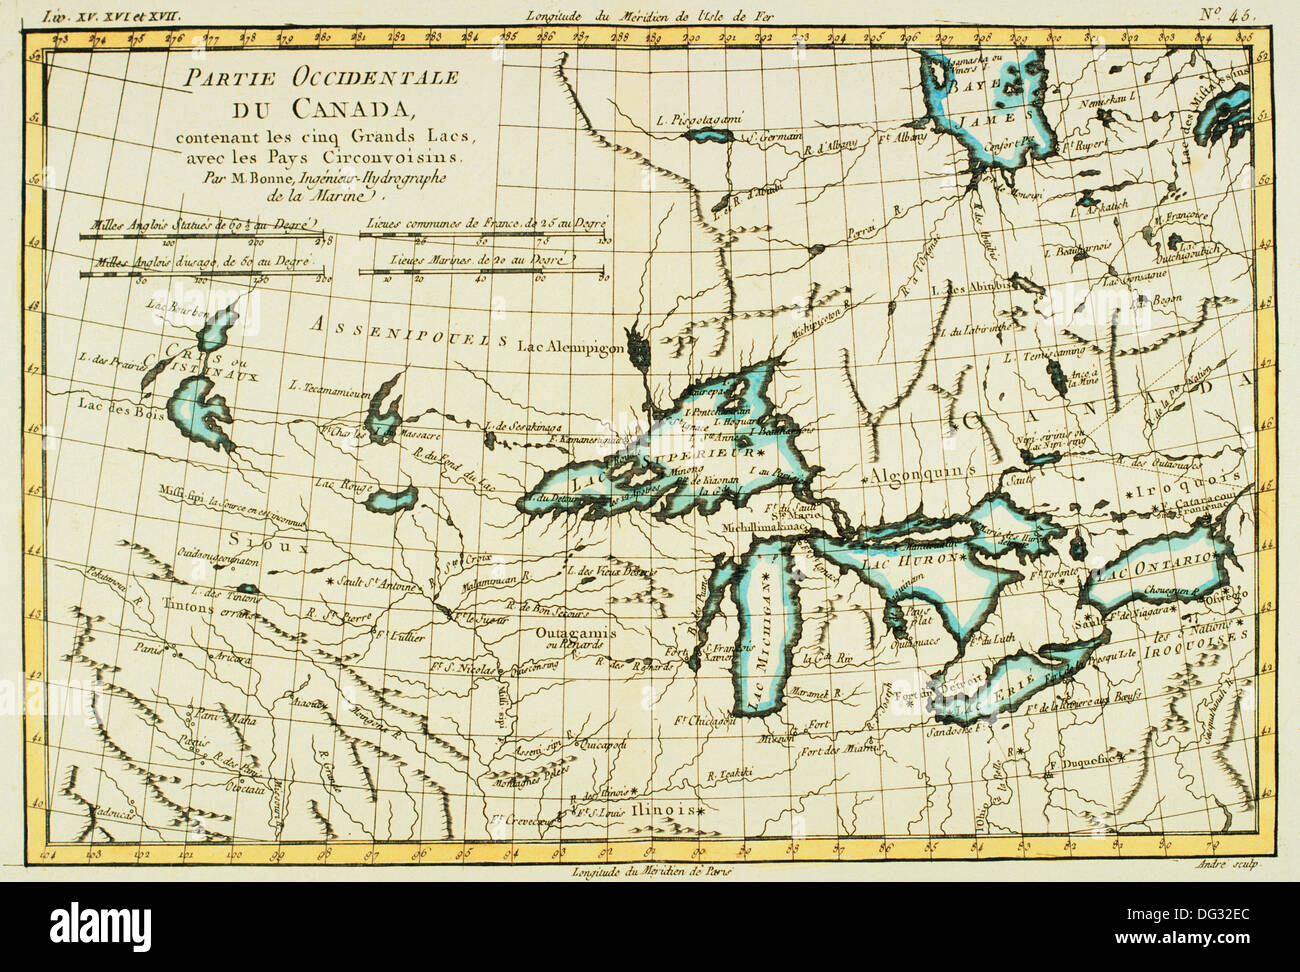 canada great lakes 18th century map